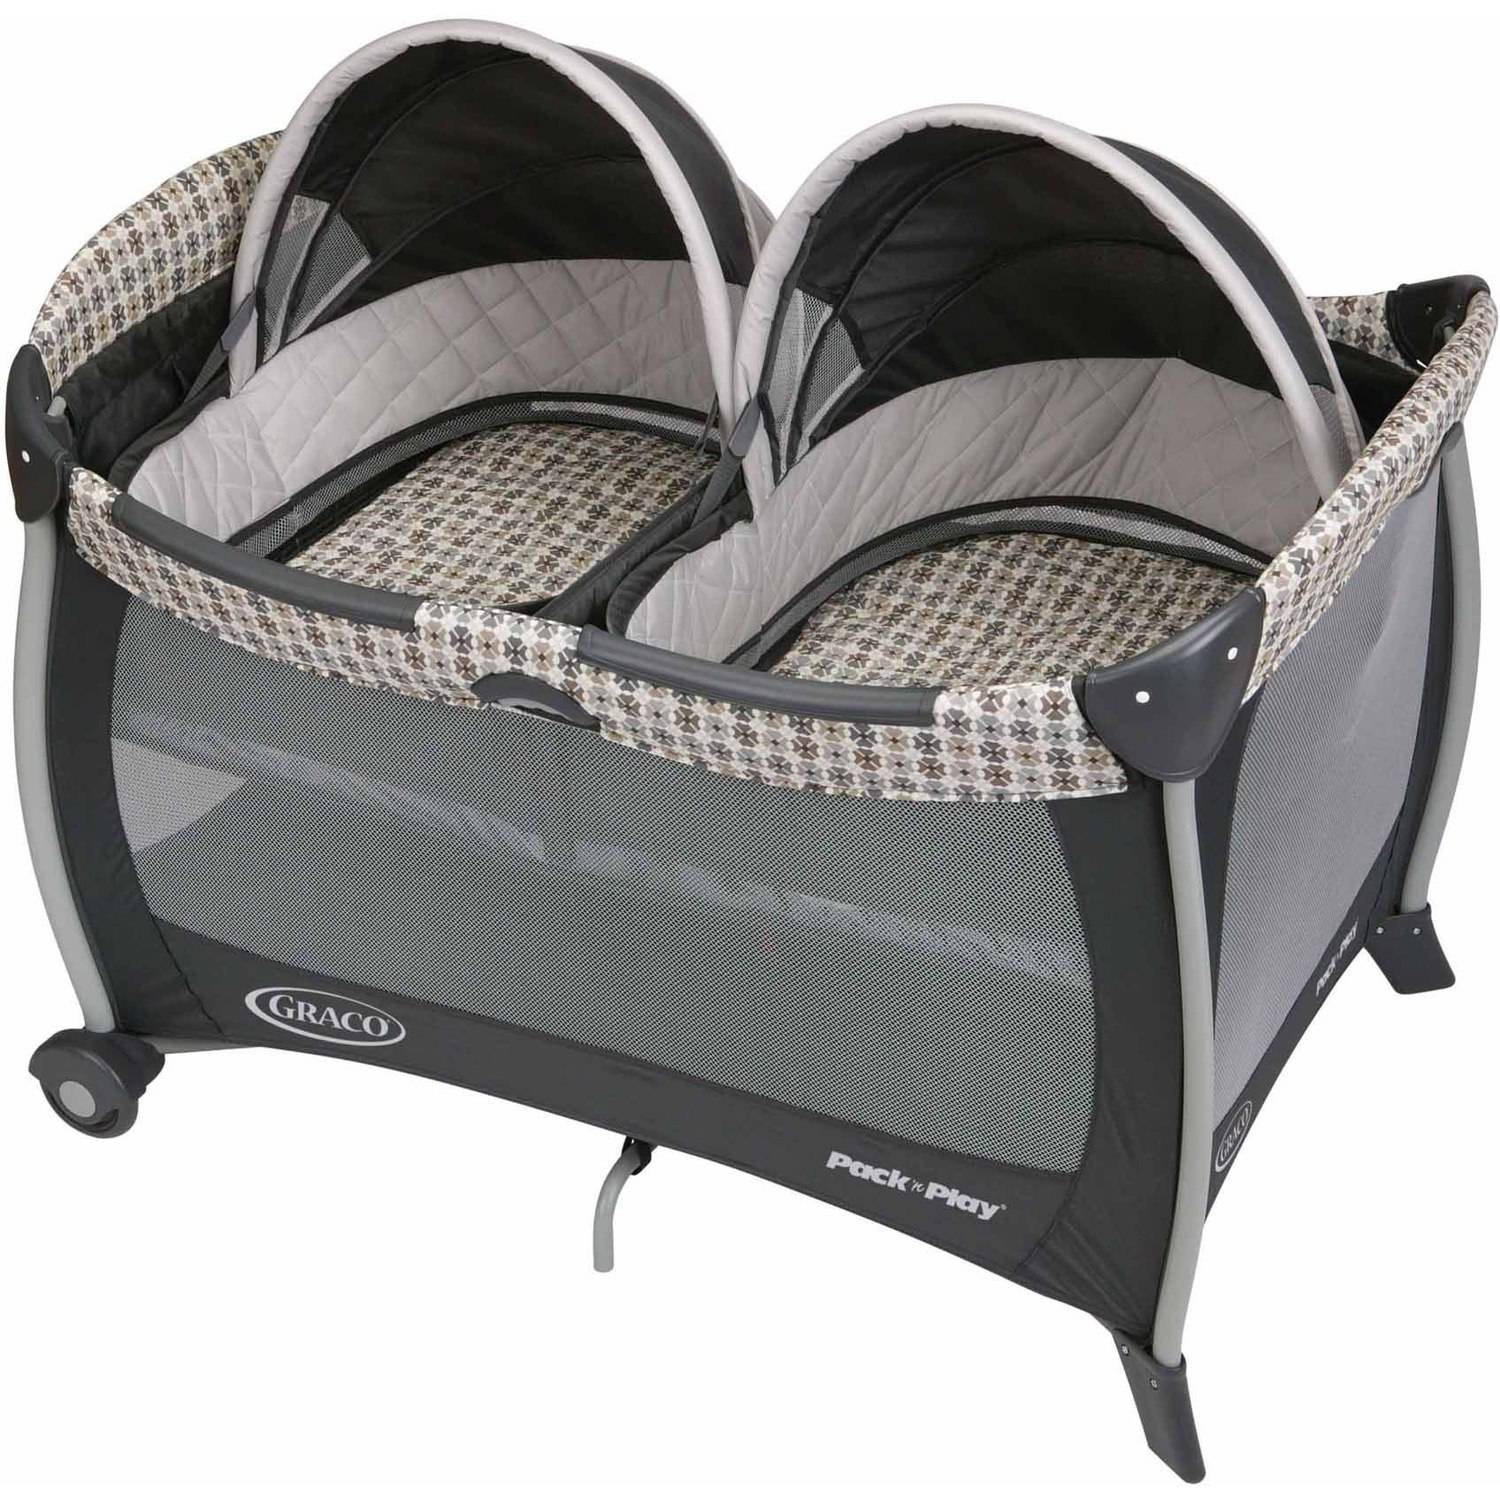 Graco Twins Bassinet Pack 'n Play Play Pen, Vance by Graco